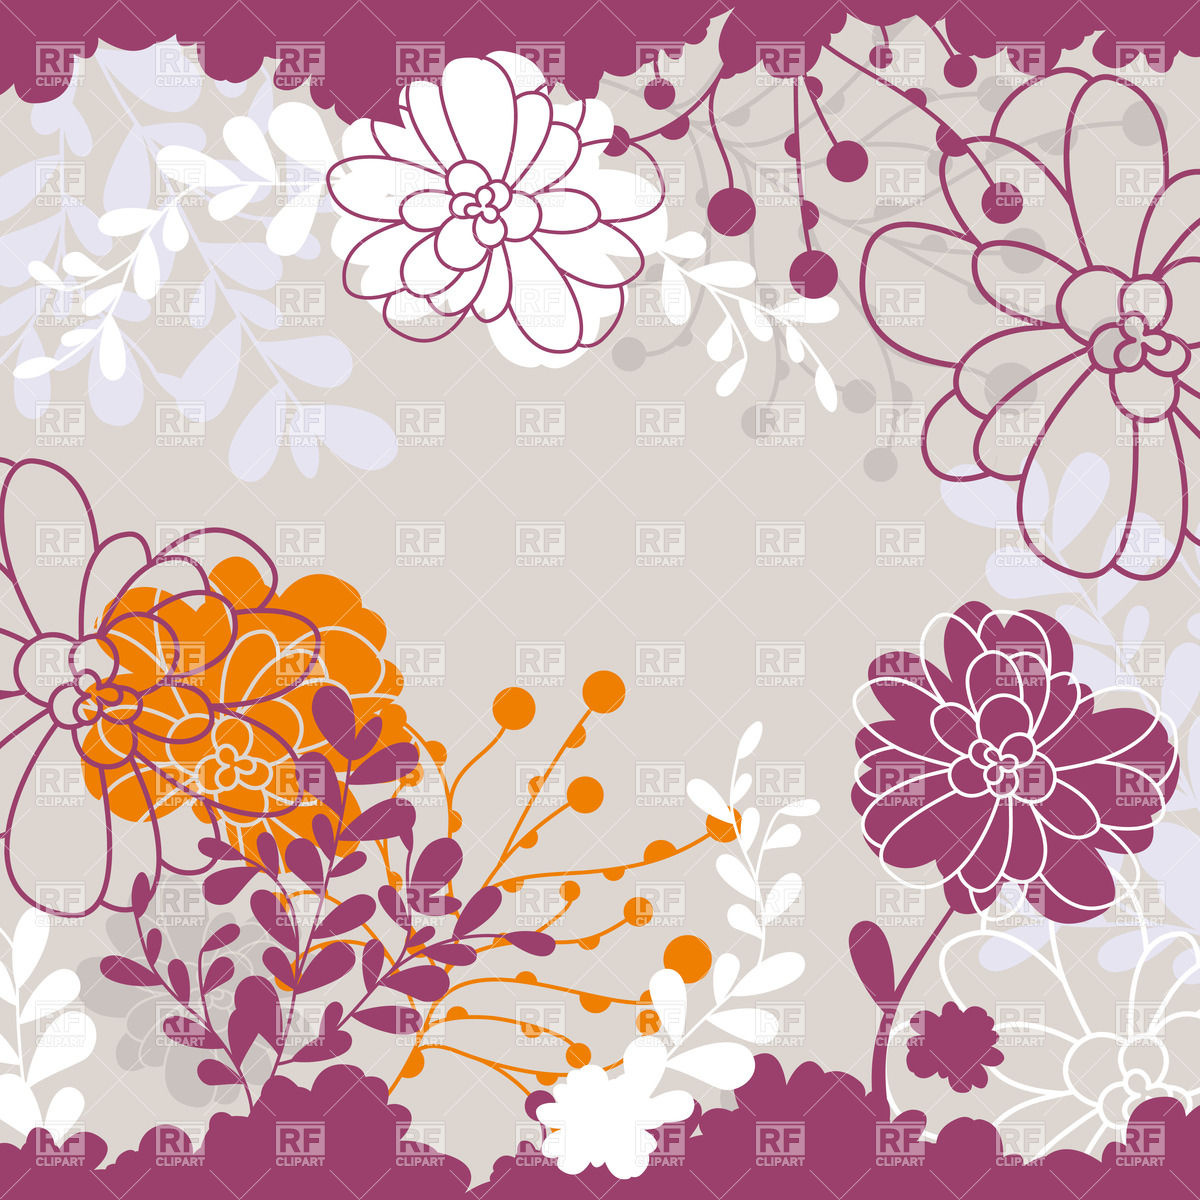 Free Download Abstract Cute Floral Background 37890 Backgrounds